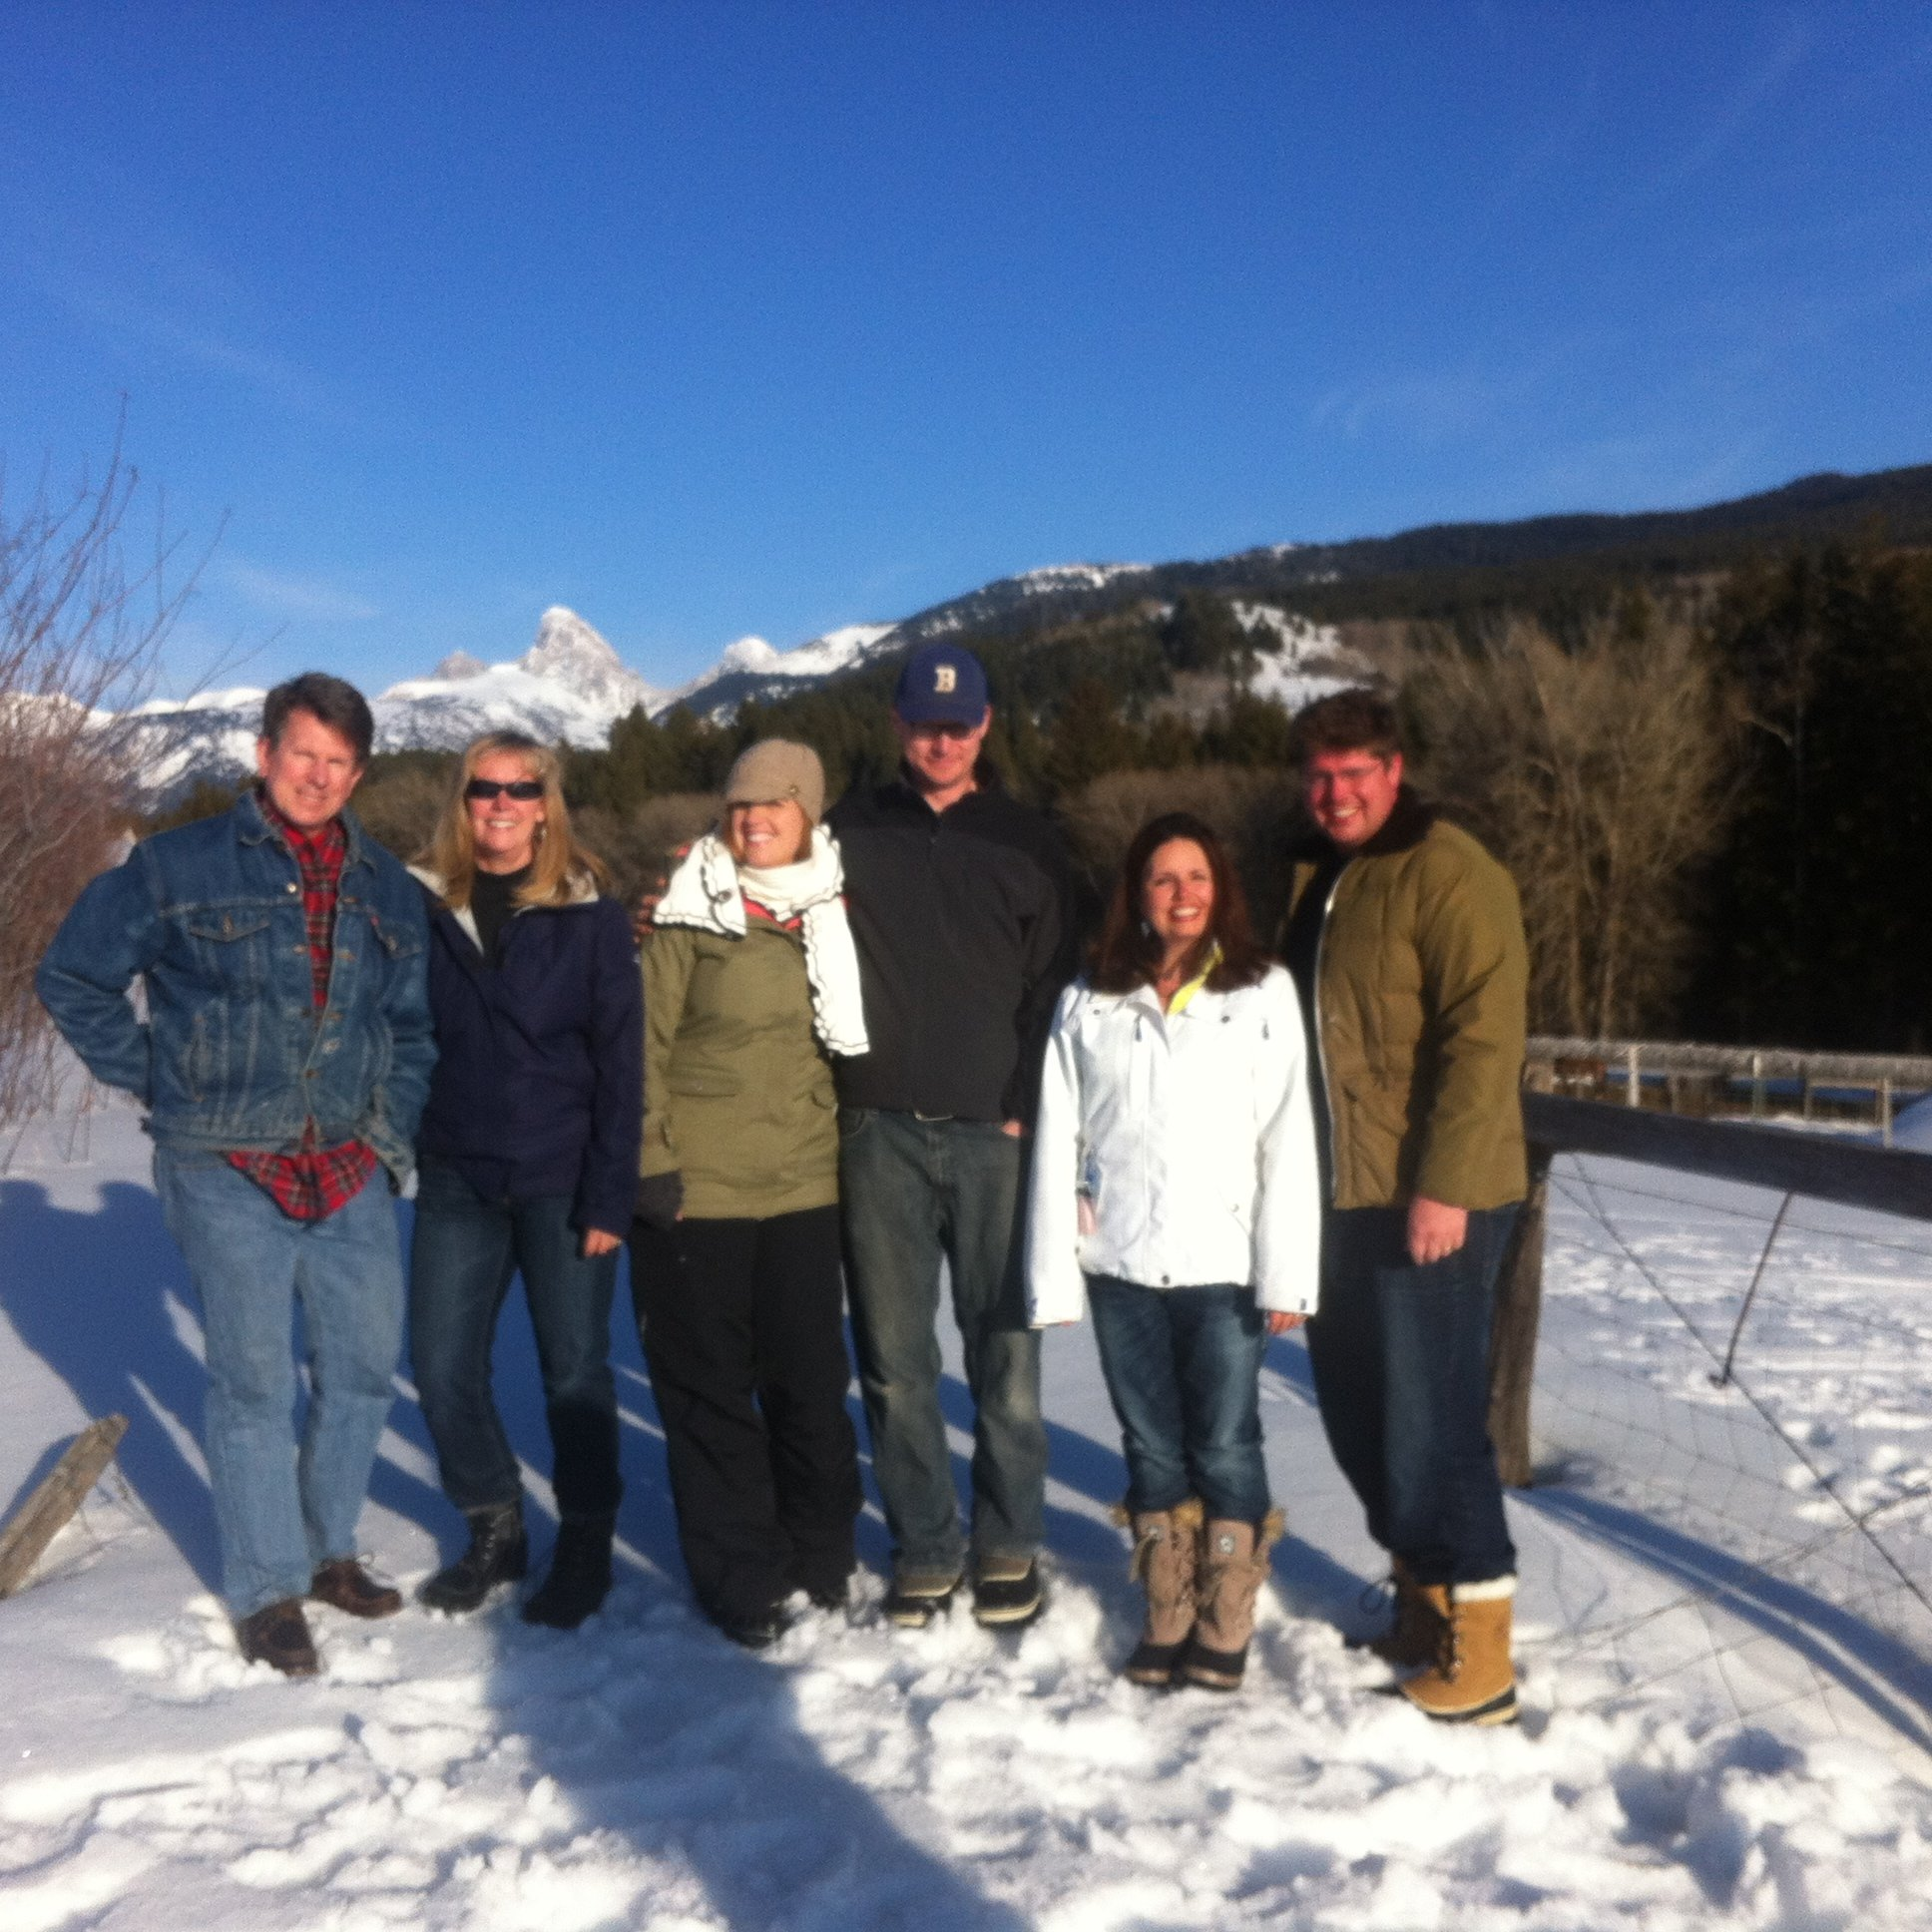 The Partners with Spouses in front of the Tetons